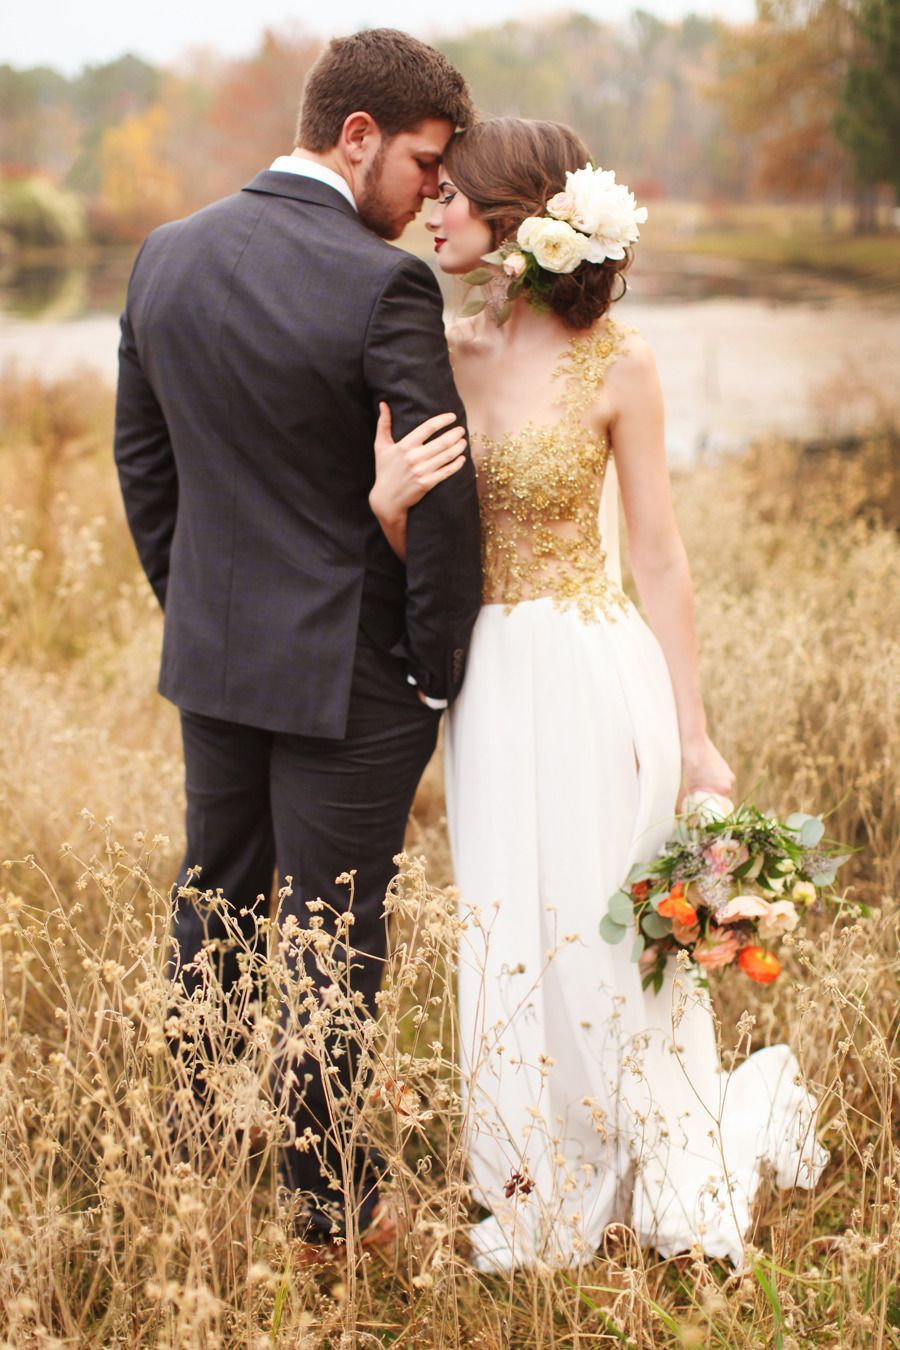 Take A Look At The Best Wedding Photography Poses In Photos Below And Get Ideas